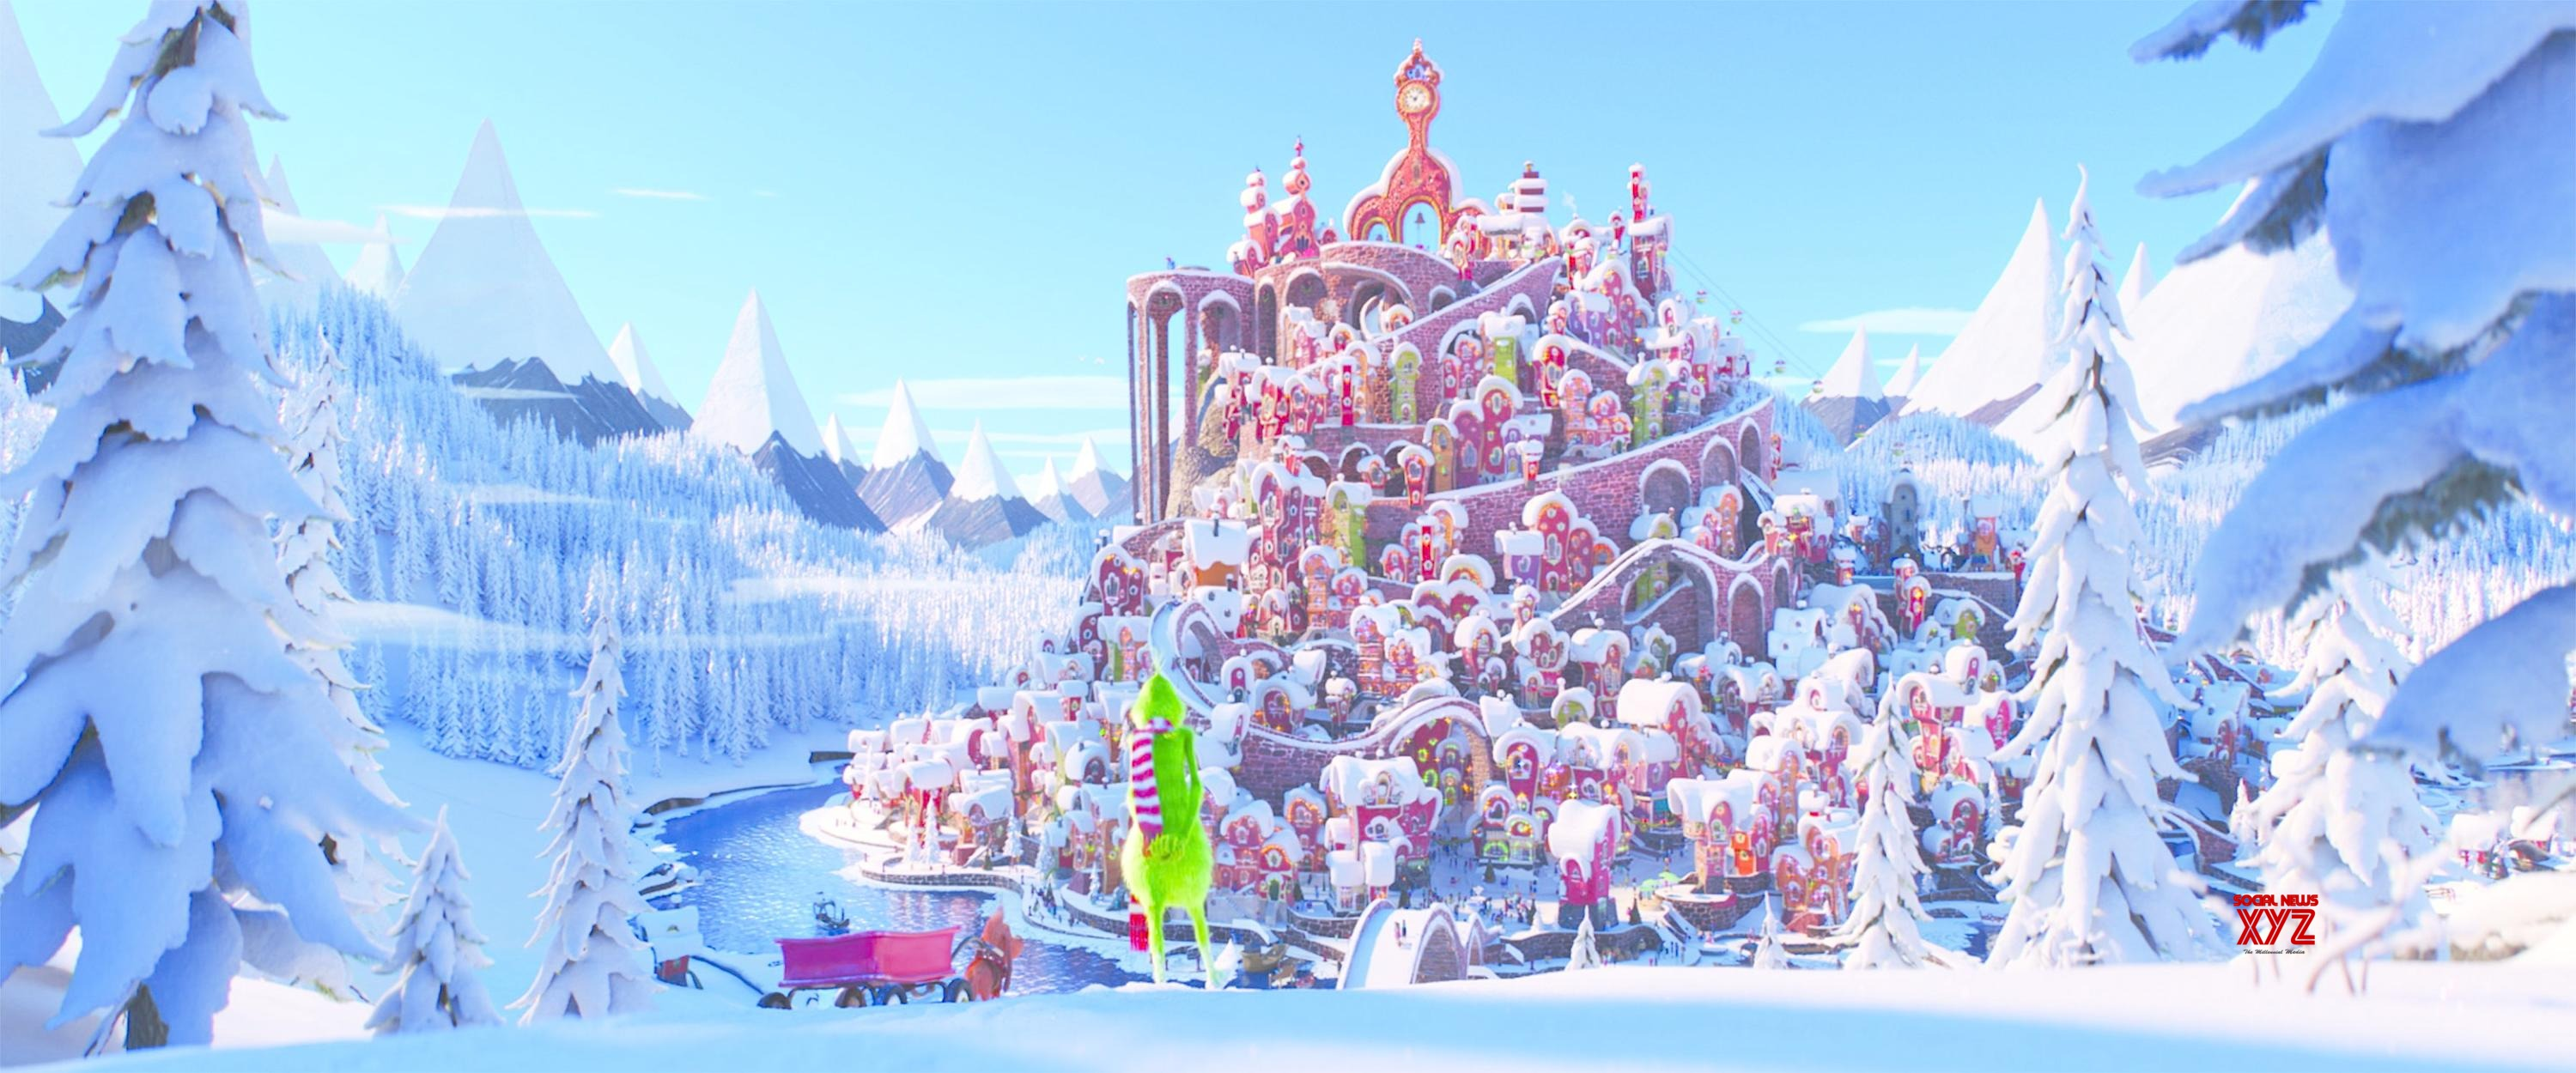 The Grinch Review: A fun-filled fantasy adventure story  (Rating: ***)